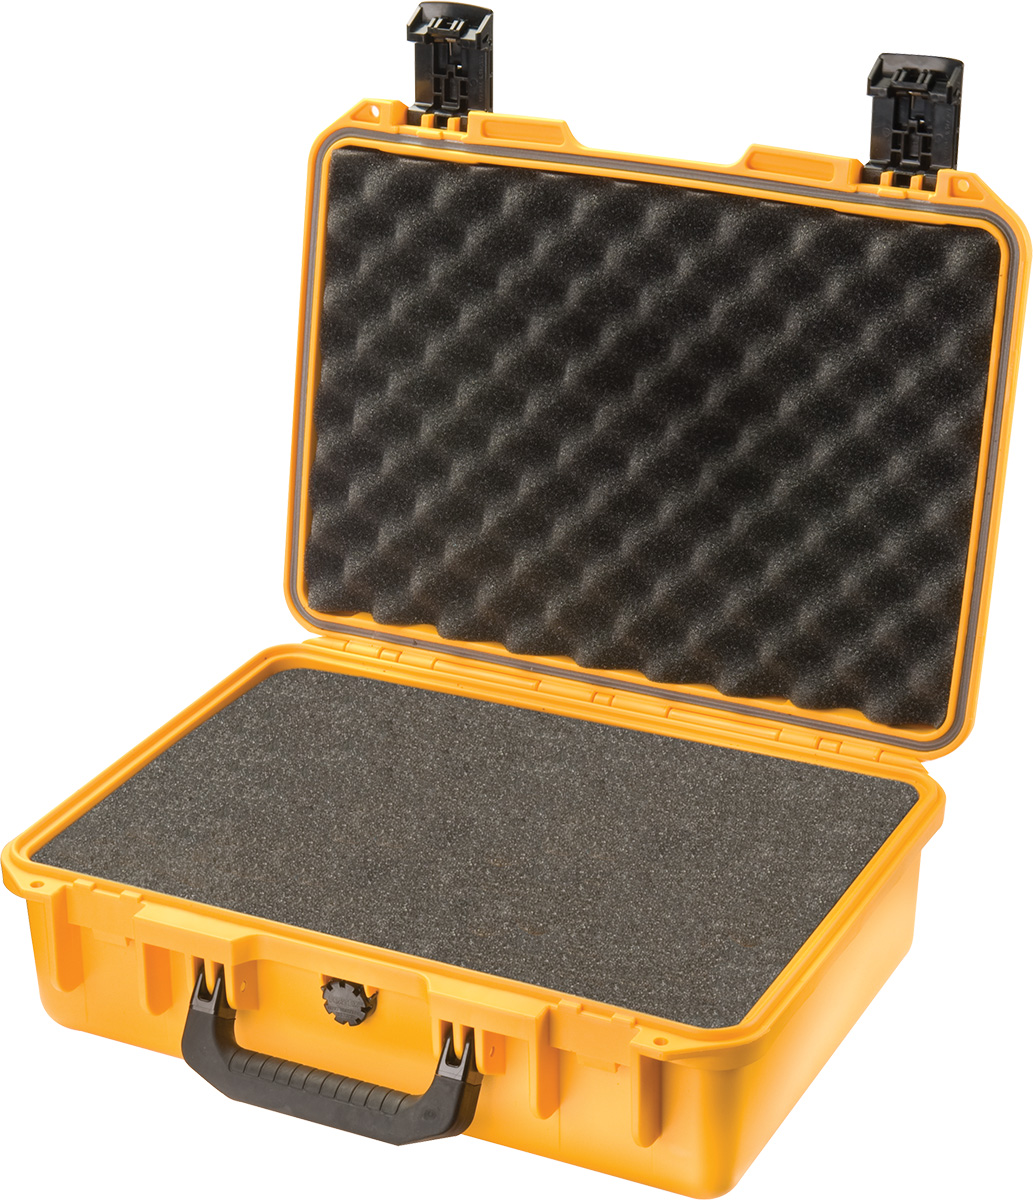 buy pelican storm im2300 shop yellow foam laptop case